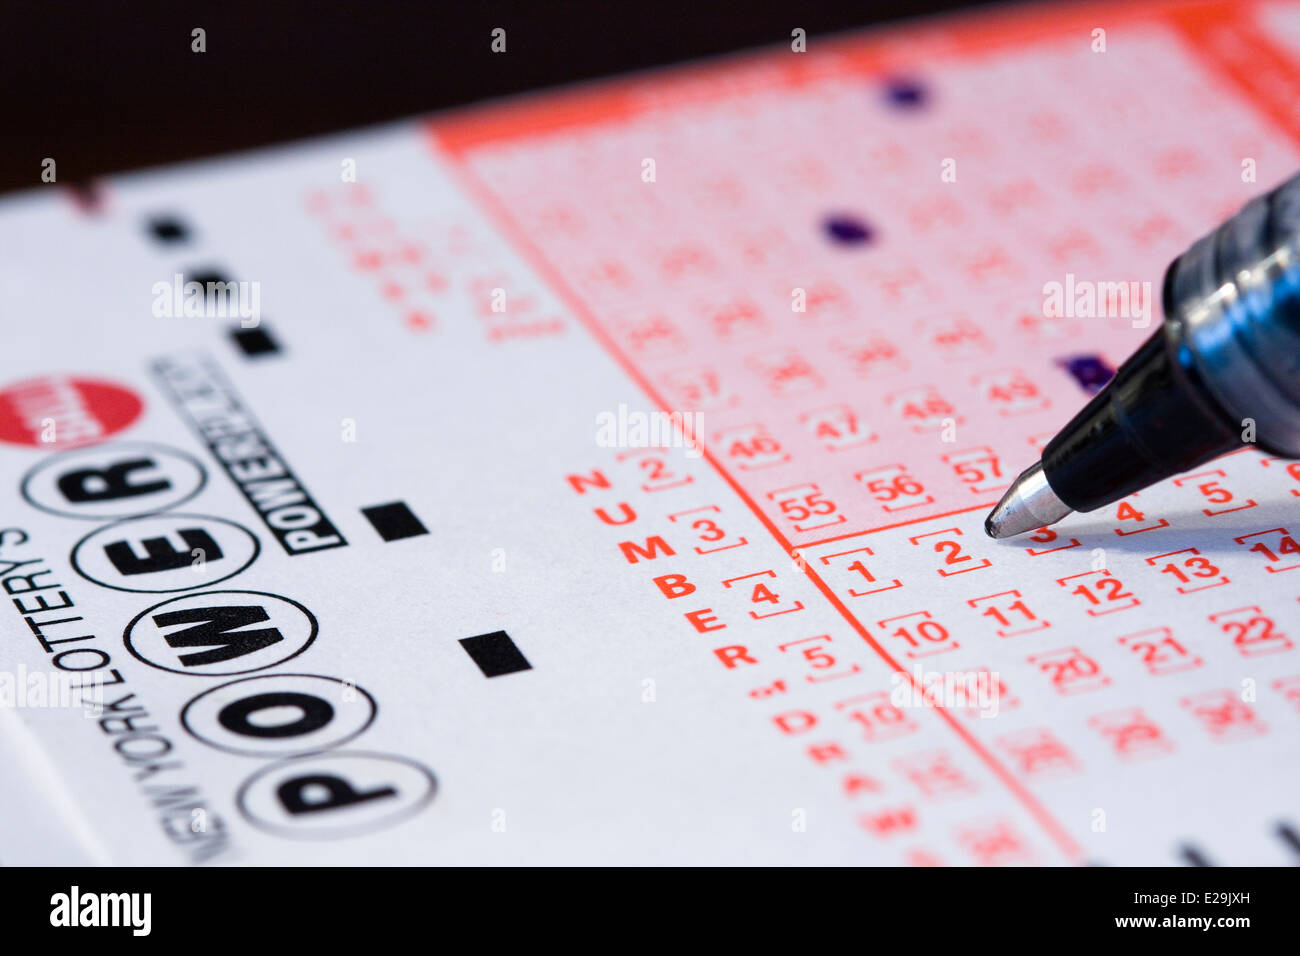 Lottery Numbers Stock Photos & Lottery Numbers Stock Images - Alamy